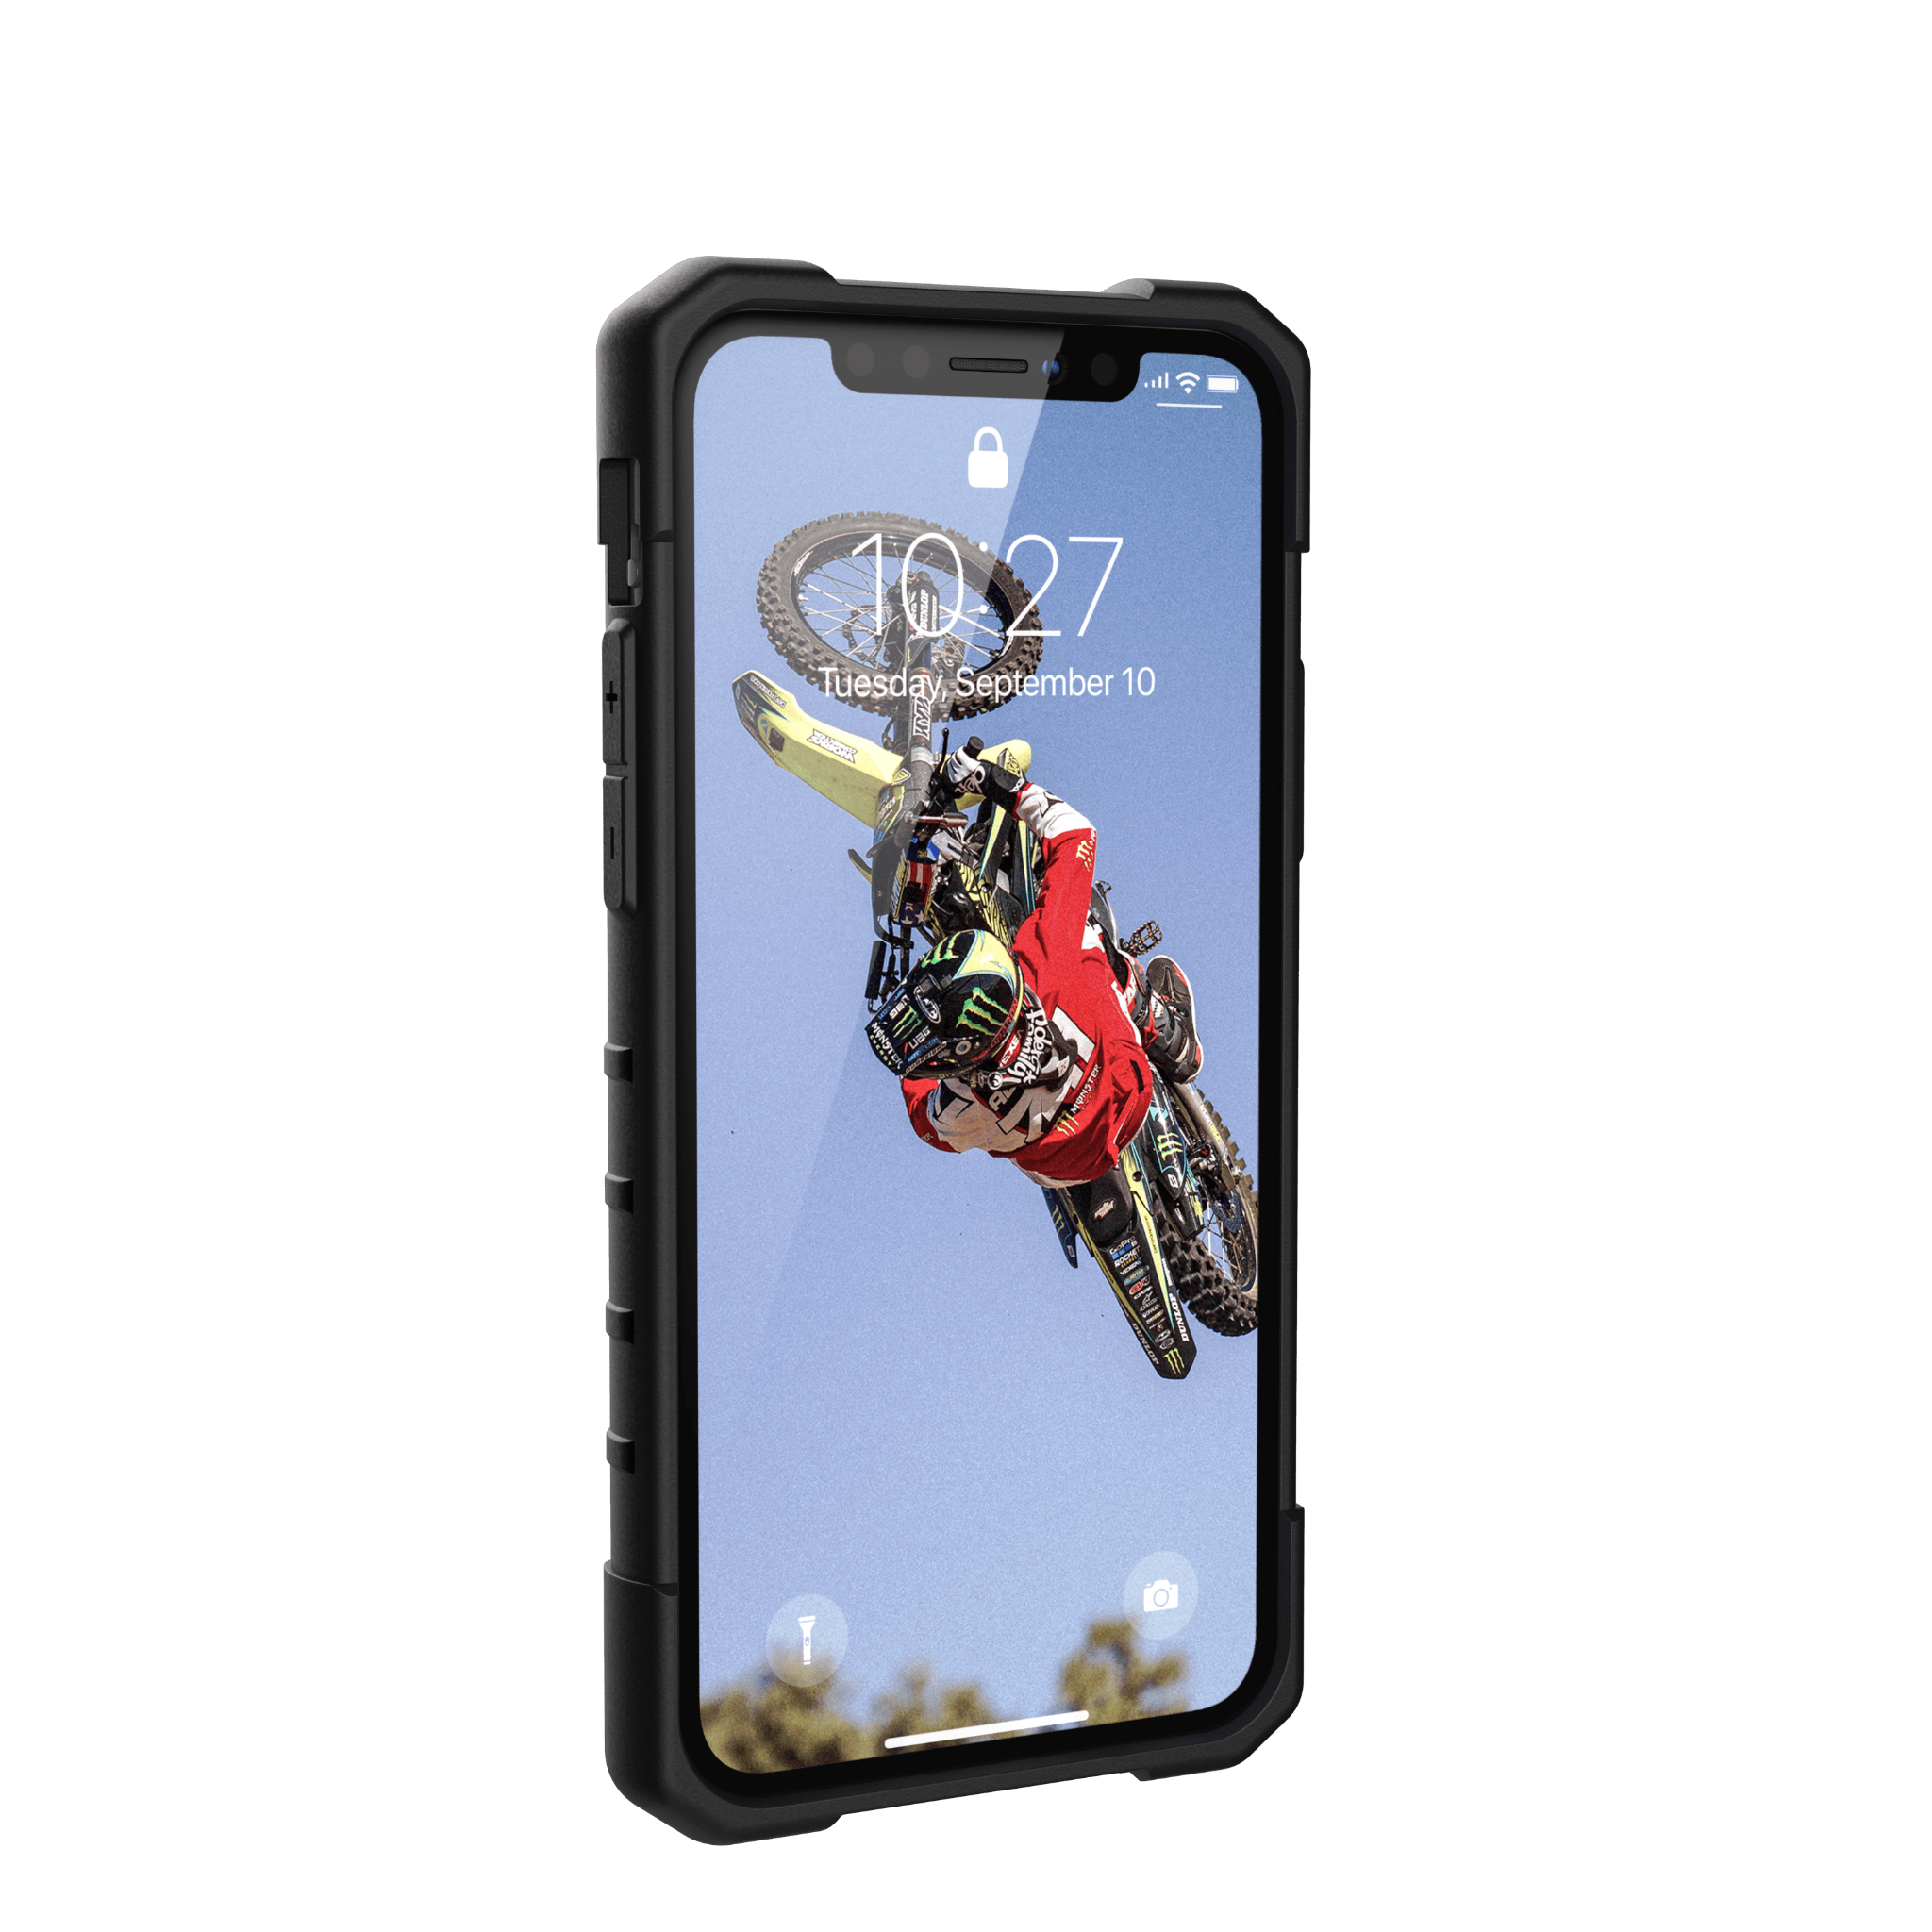 ỐP LƯNG UAG PATHFINDER CHO IPHONE 11 PRO [5.8-INCH] - Slate